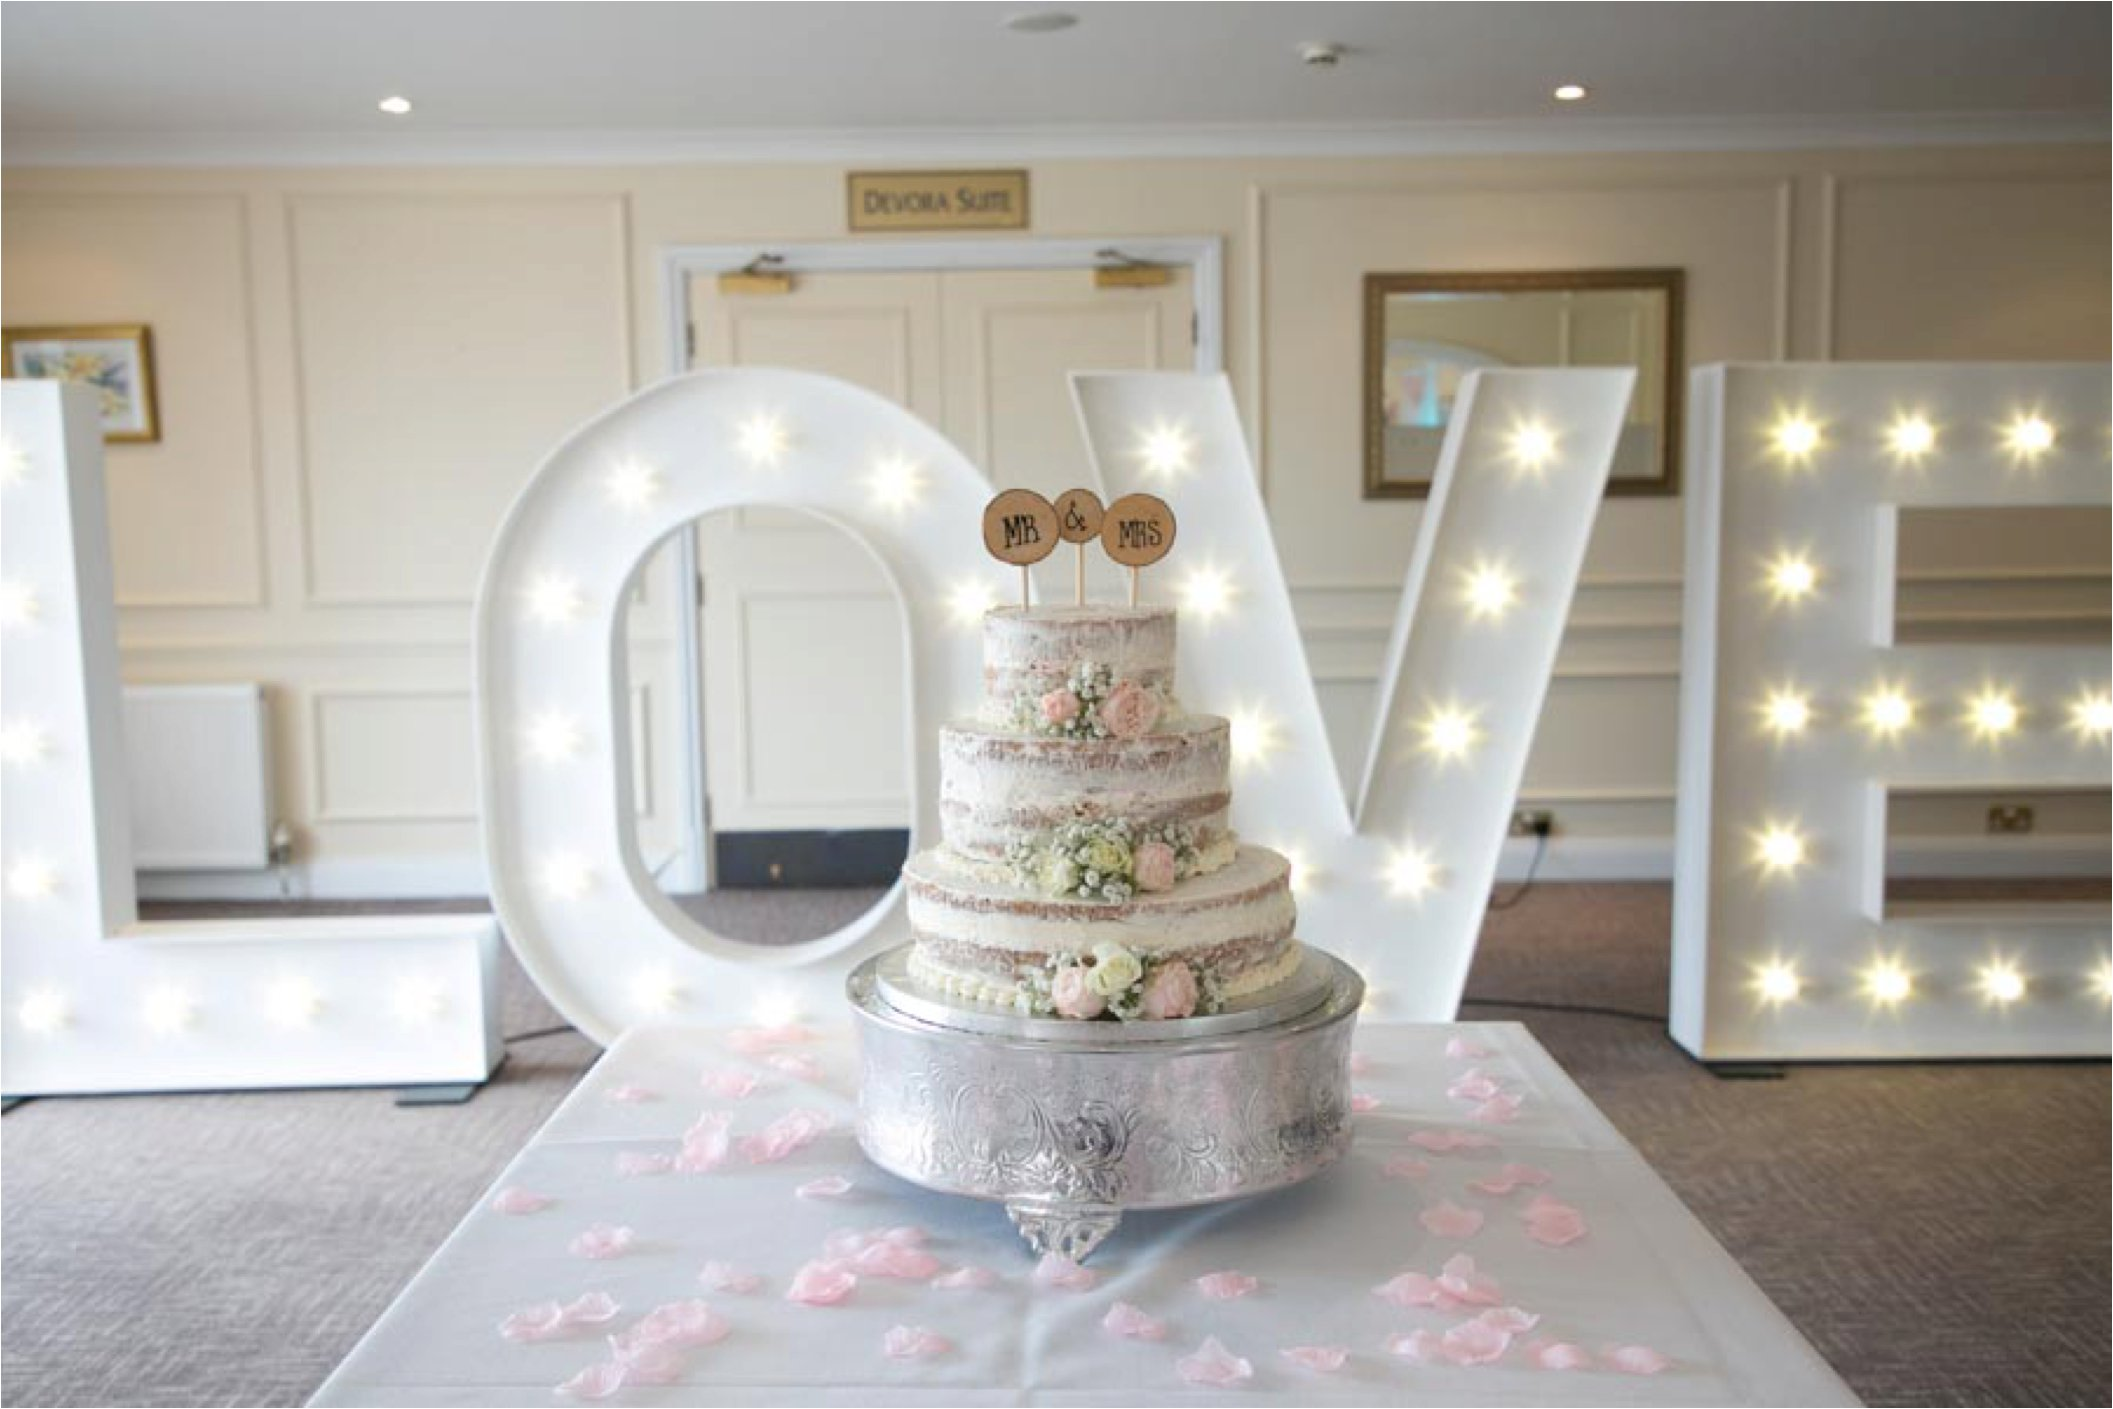 naked cake and giant light up letters